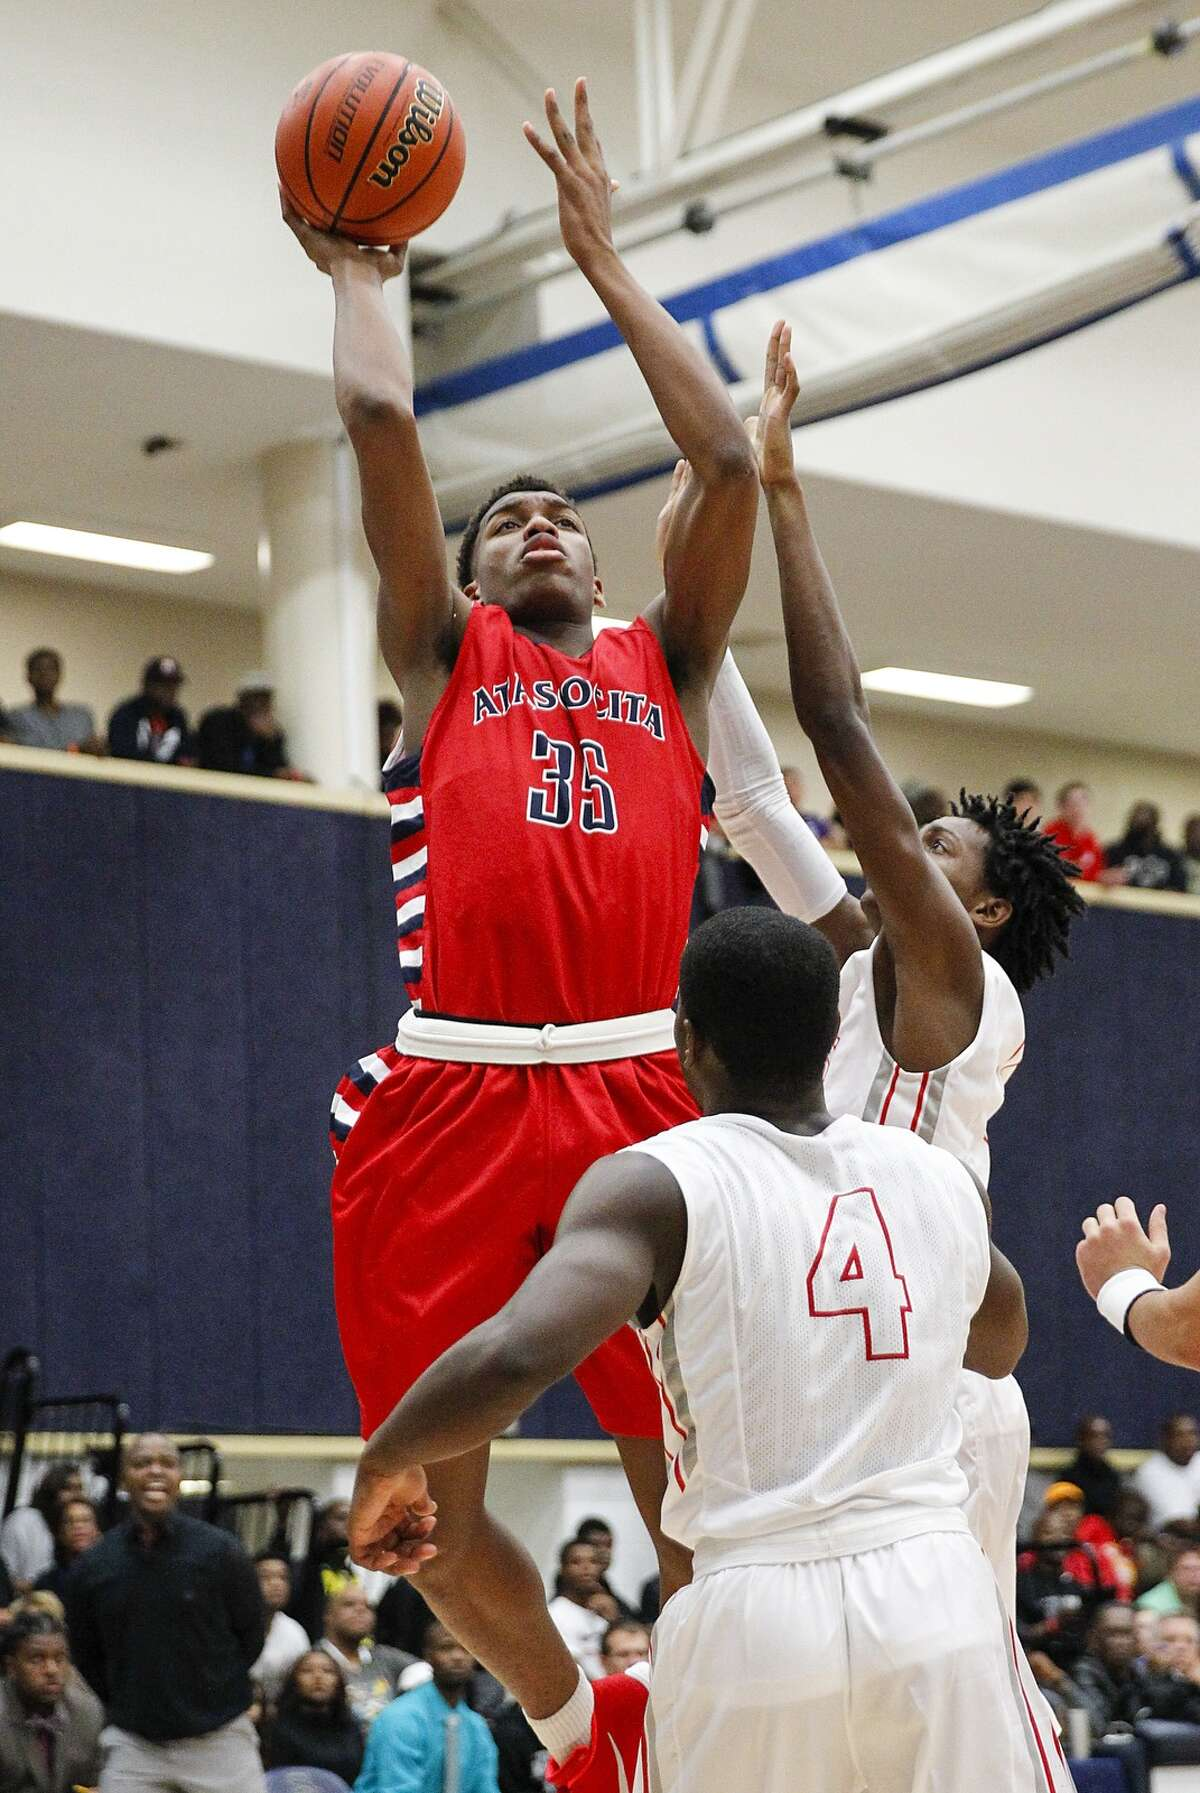 Atascocita's Fabian White and the Eagles are soaring to the big prize as they compete in the UIL Class 6A Boys Basketball Tournament in San Antonio this weekend.